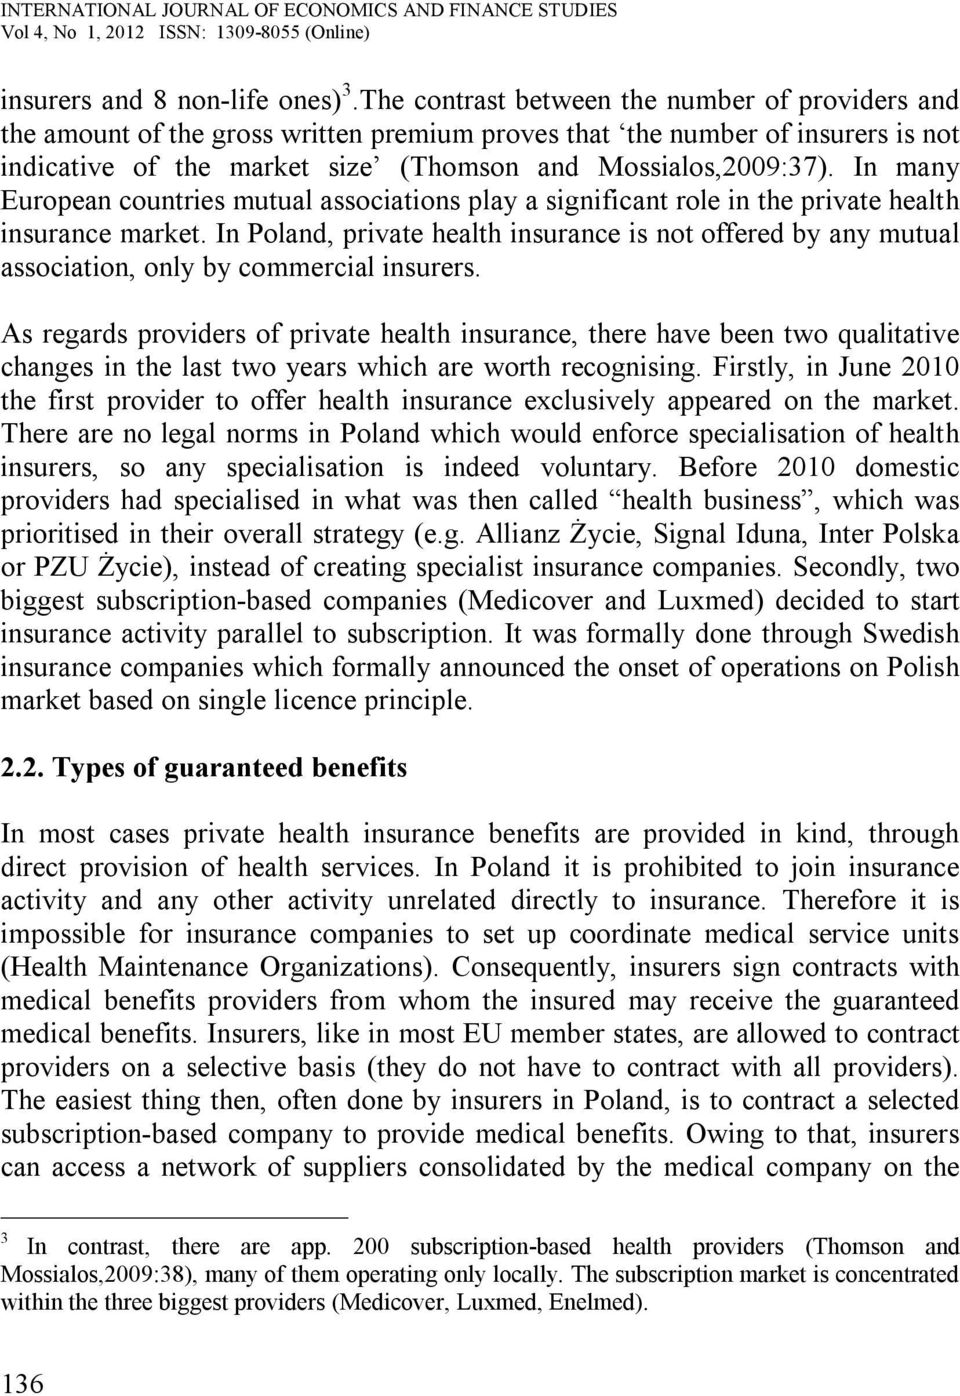 In many European countries mutual associations play a significant role in the private health insurance market.